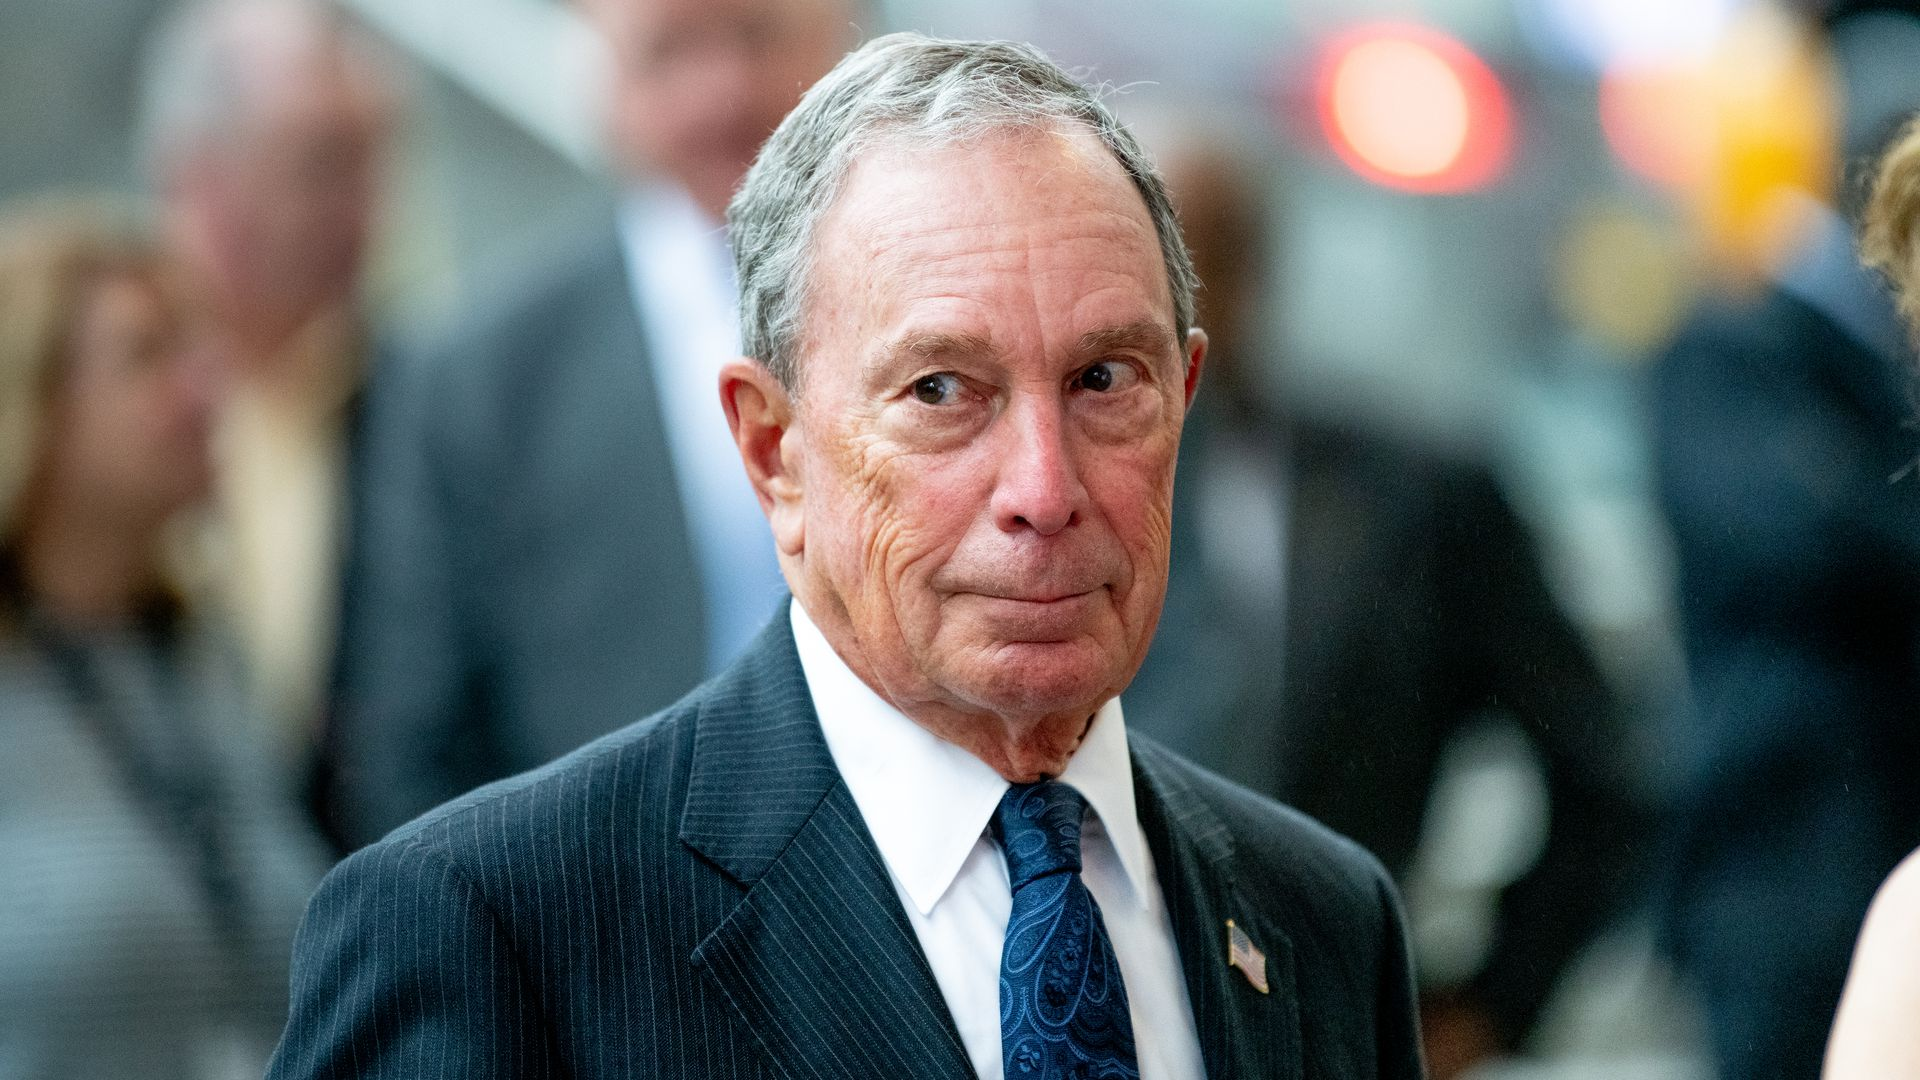 Michael Bloomberg files to enter Democratic presidential primary